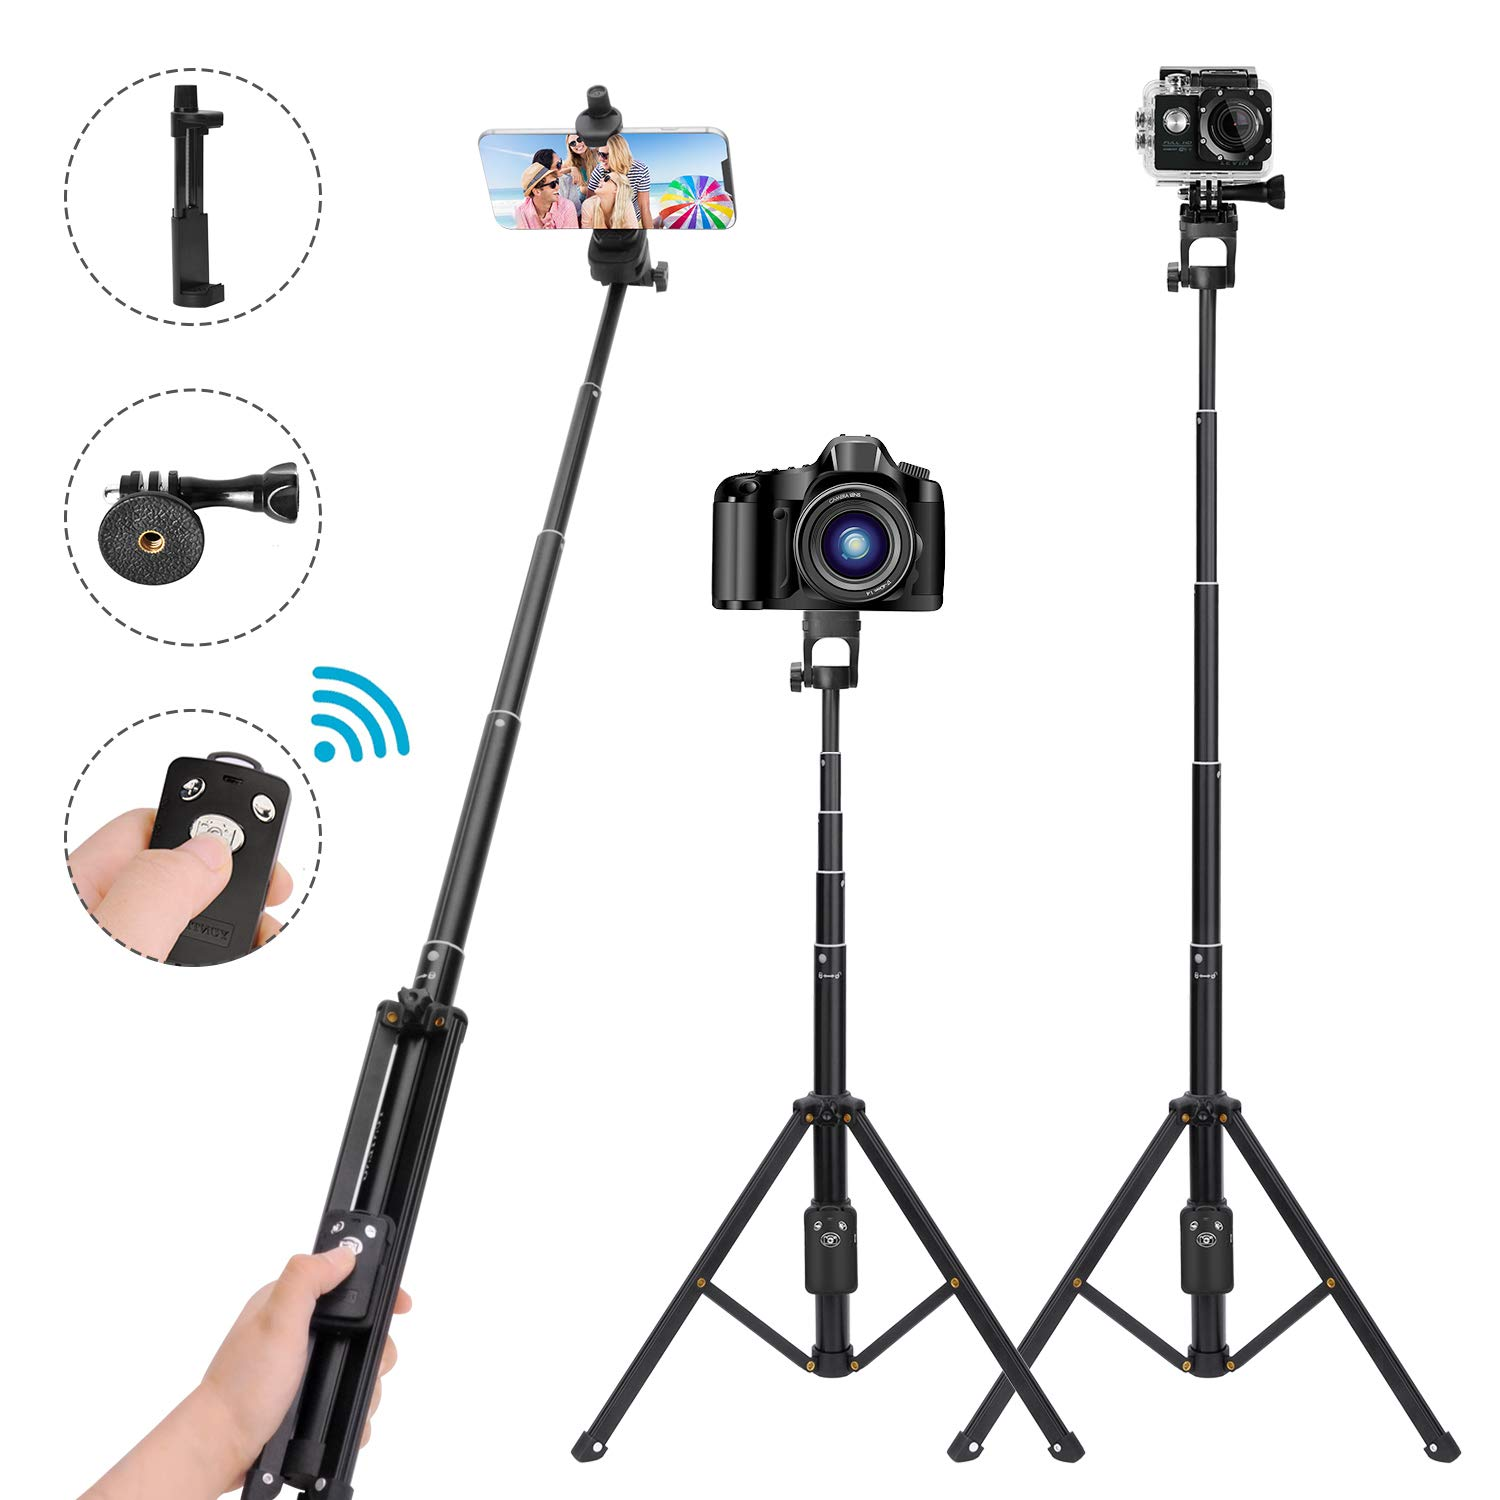 Selfie Stick Tripod, 54 Inch Extendable Camera Tripod for Cellphone, Bluetooth Remote for Apple & Android Devices, Suitable for iPhone 6 7 8 X Plus, Samsung Galaxy S9 Note8, Gopro Adapter Included Leypin